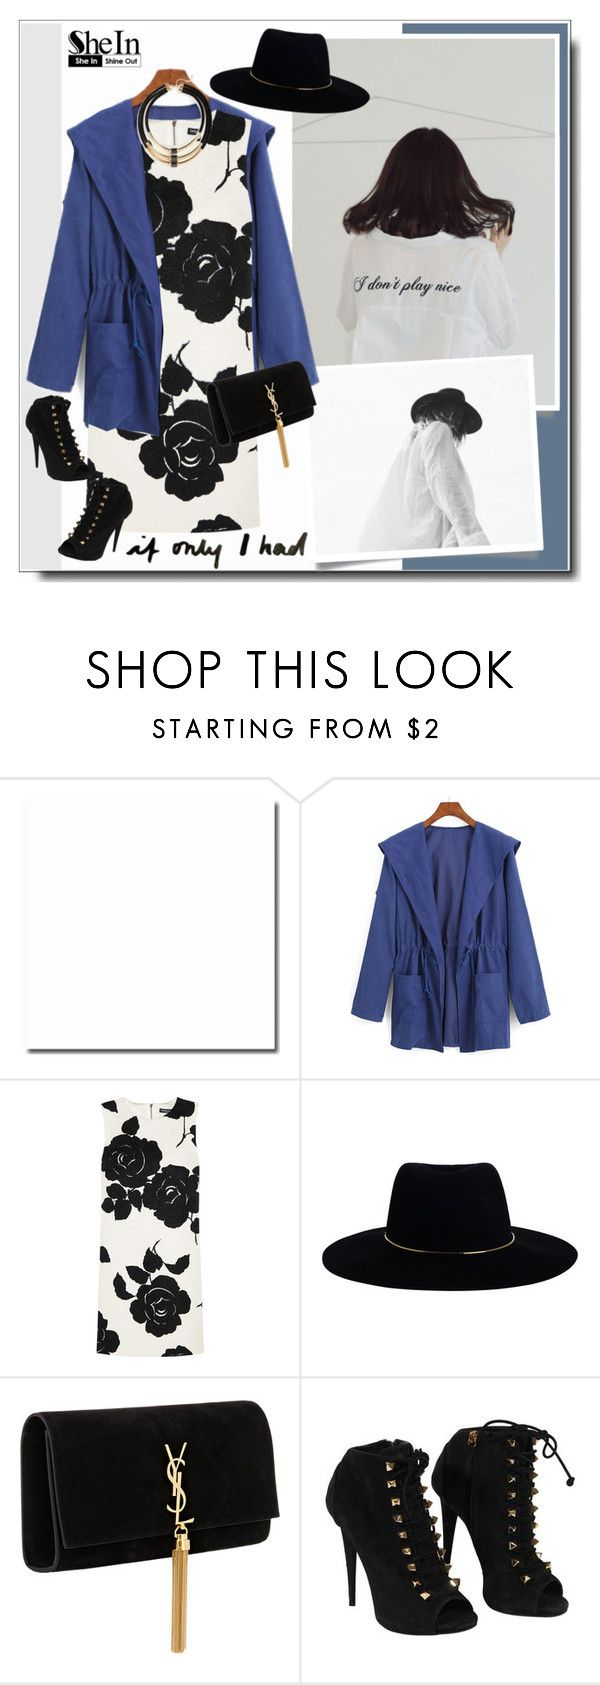 """""""Lady Luck"""" by shandra37 ❤ liked on Polyvore featuring Dolce&Gabbana, Zimmermann, Yves Saint Laurent, Giuseppe Zanotti, Topshop, StreetStyle, Sheinside, retro, fallwinter2015 and shein"""